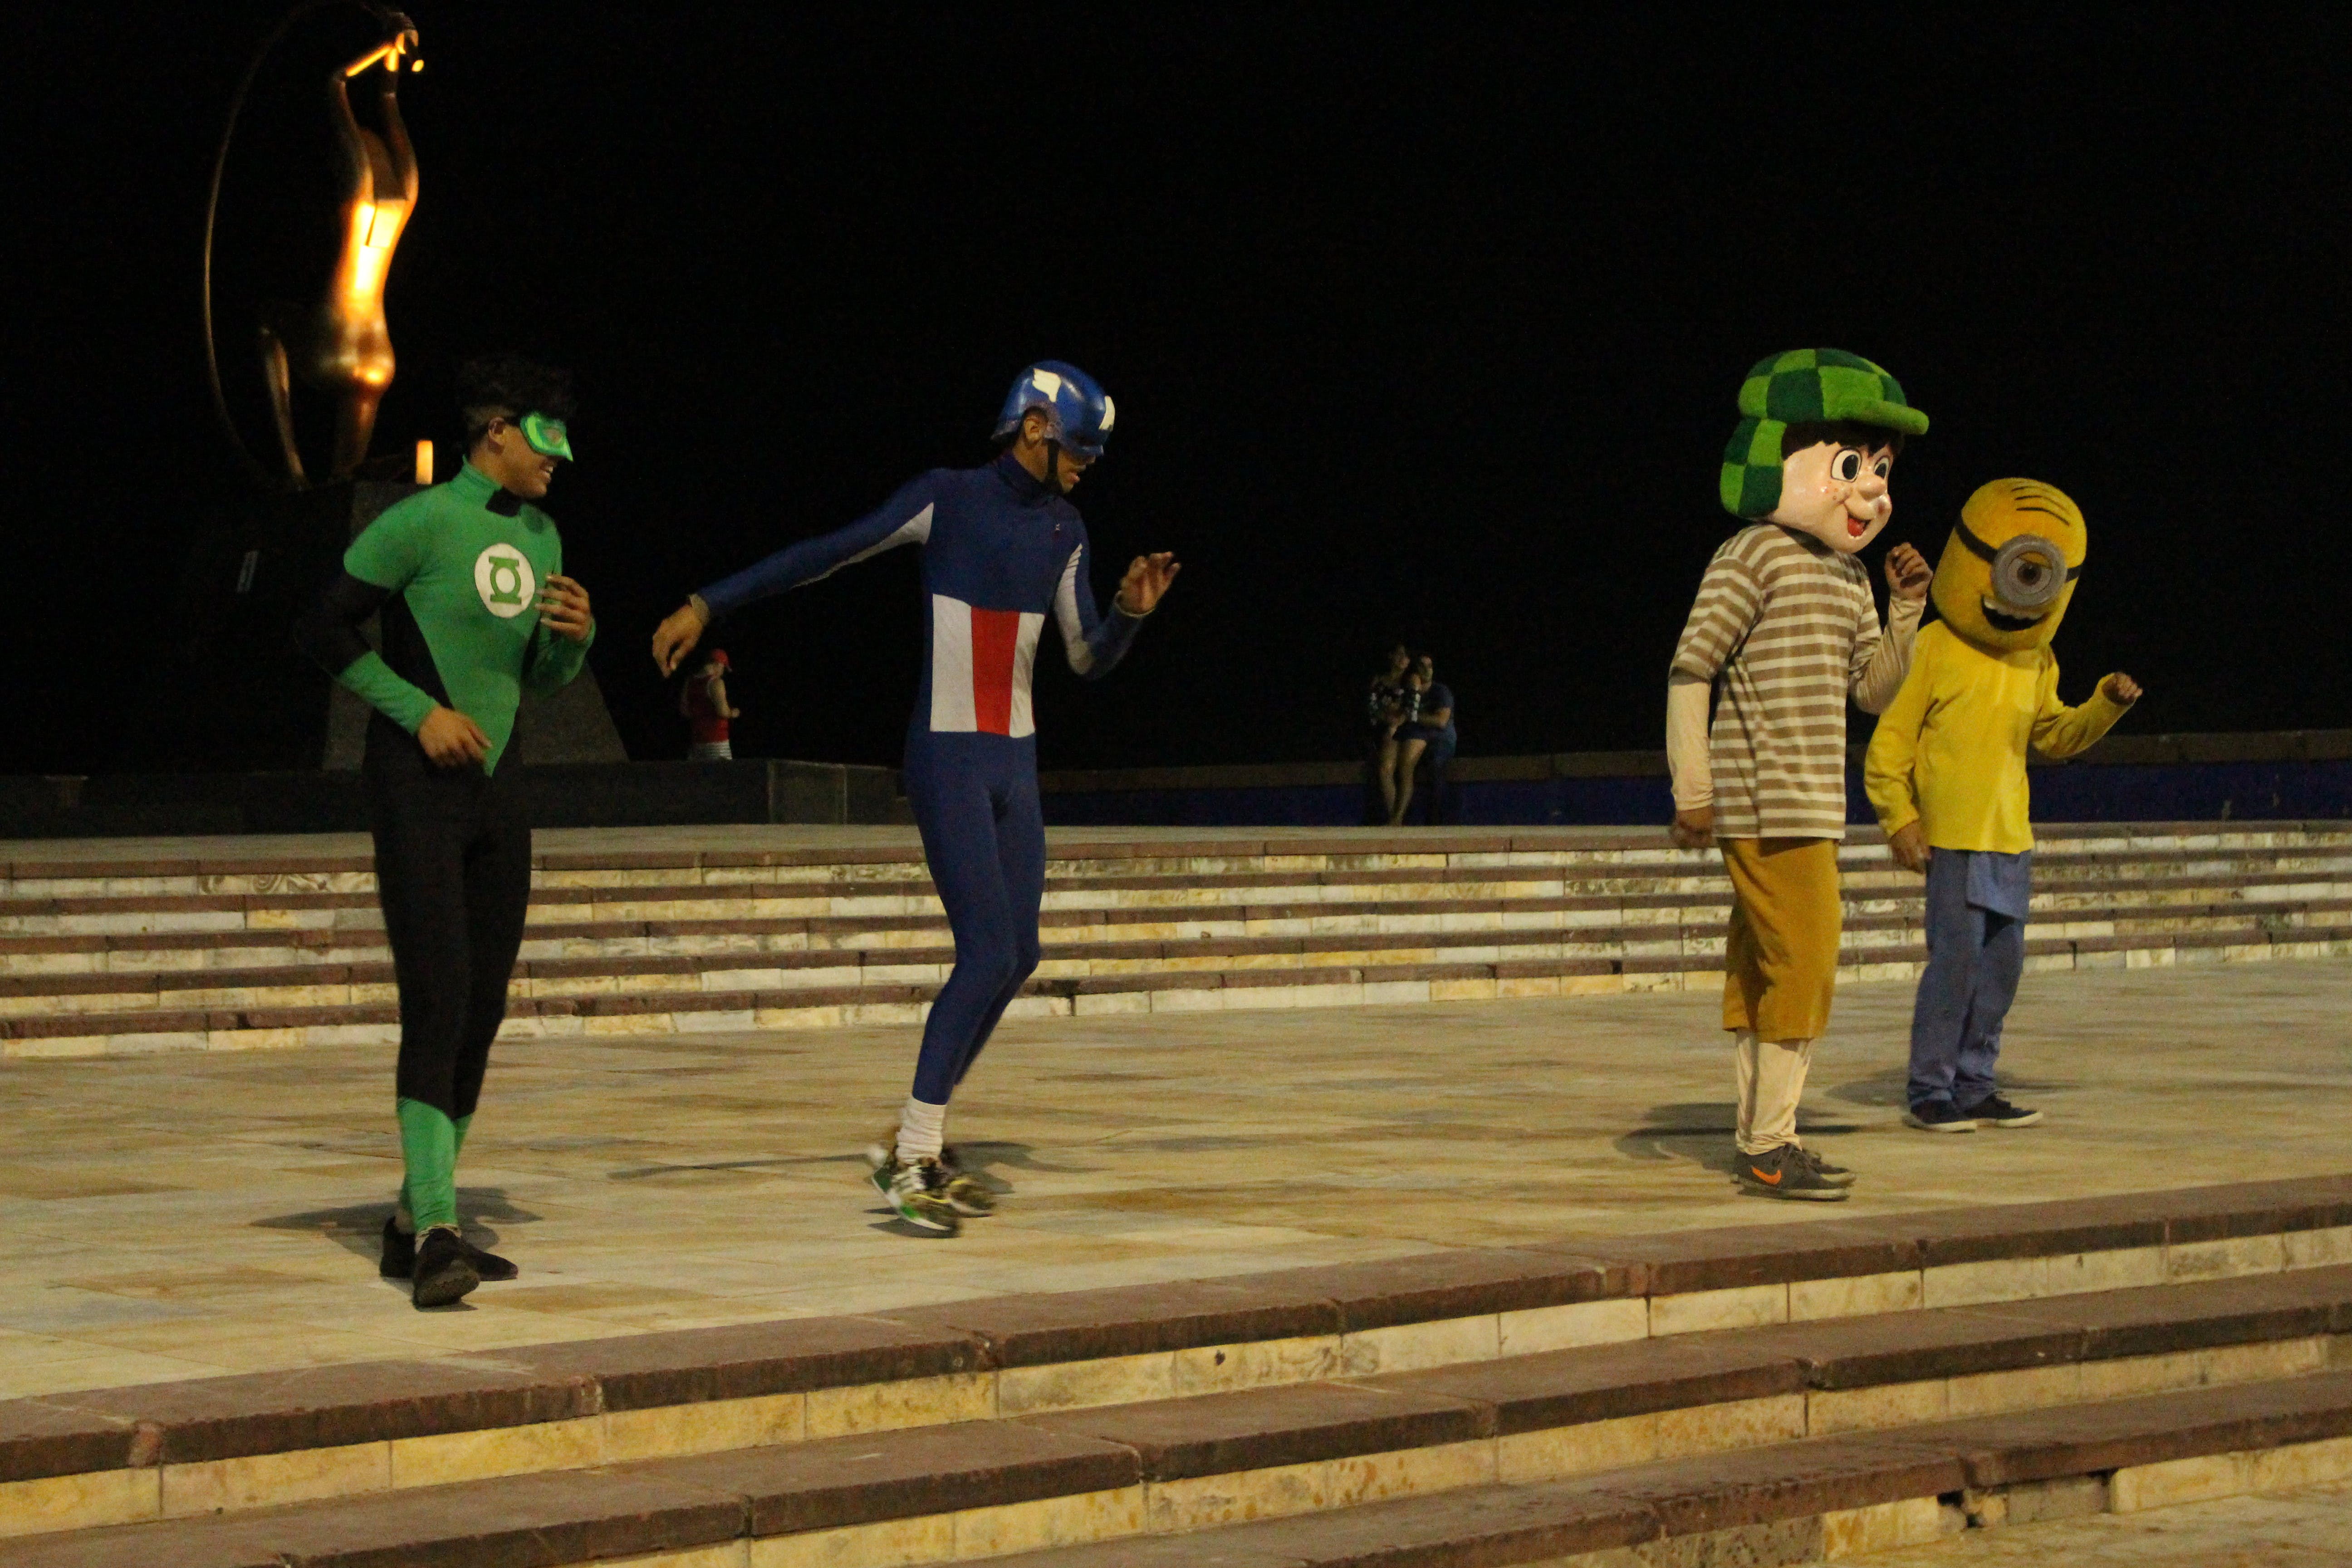 Free stock photo of Capitanamerican, chaves, clowns, dance